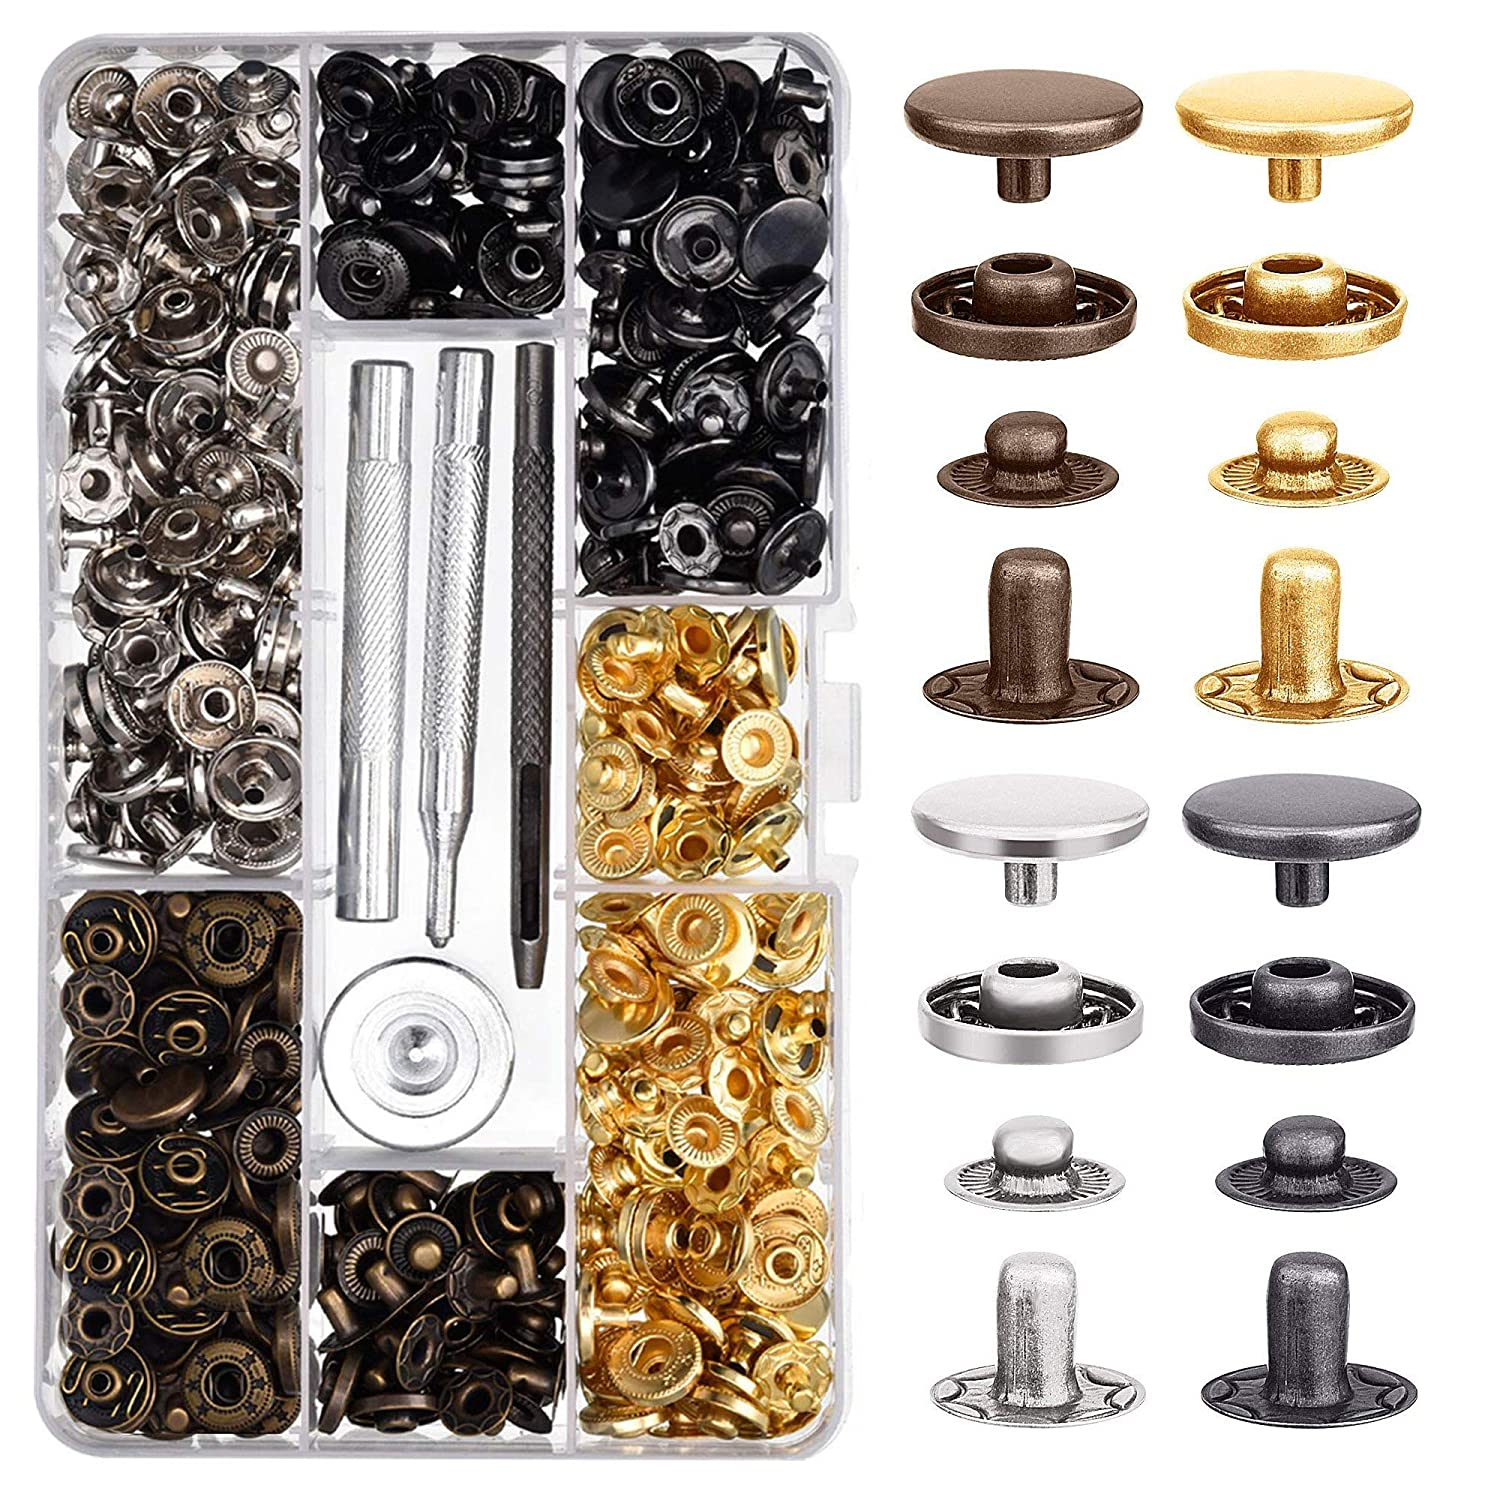 Bavzerko 100 Sets Snap Fastener Kit Leather Snap Buttons Metal Snaps Press Studs with 4 Pieces Fixing Tools for Clothing Leather Bracelet Jeans Wear Jacket Bags Belts 633//12.5 mm in Diameter